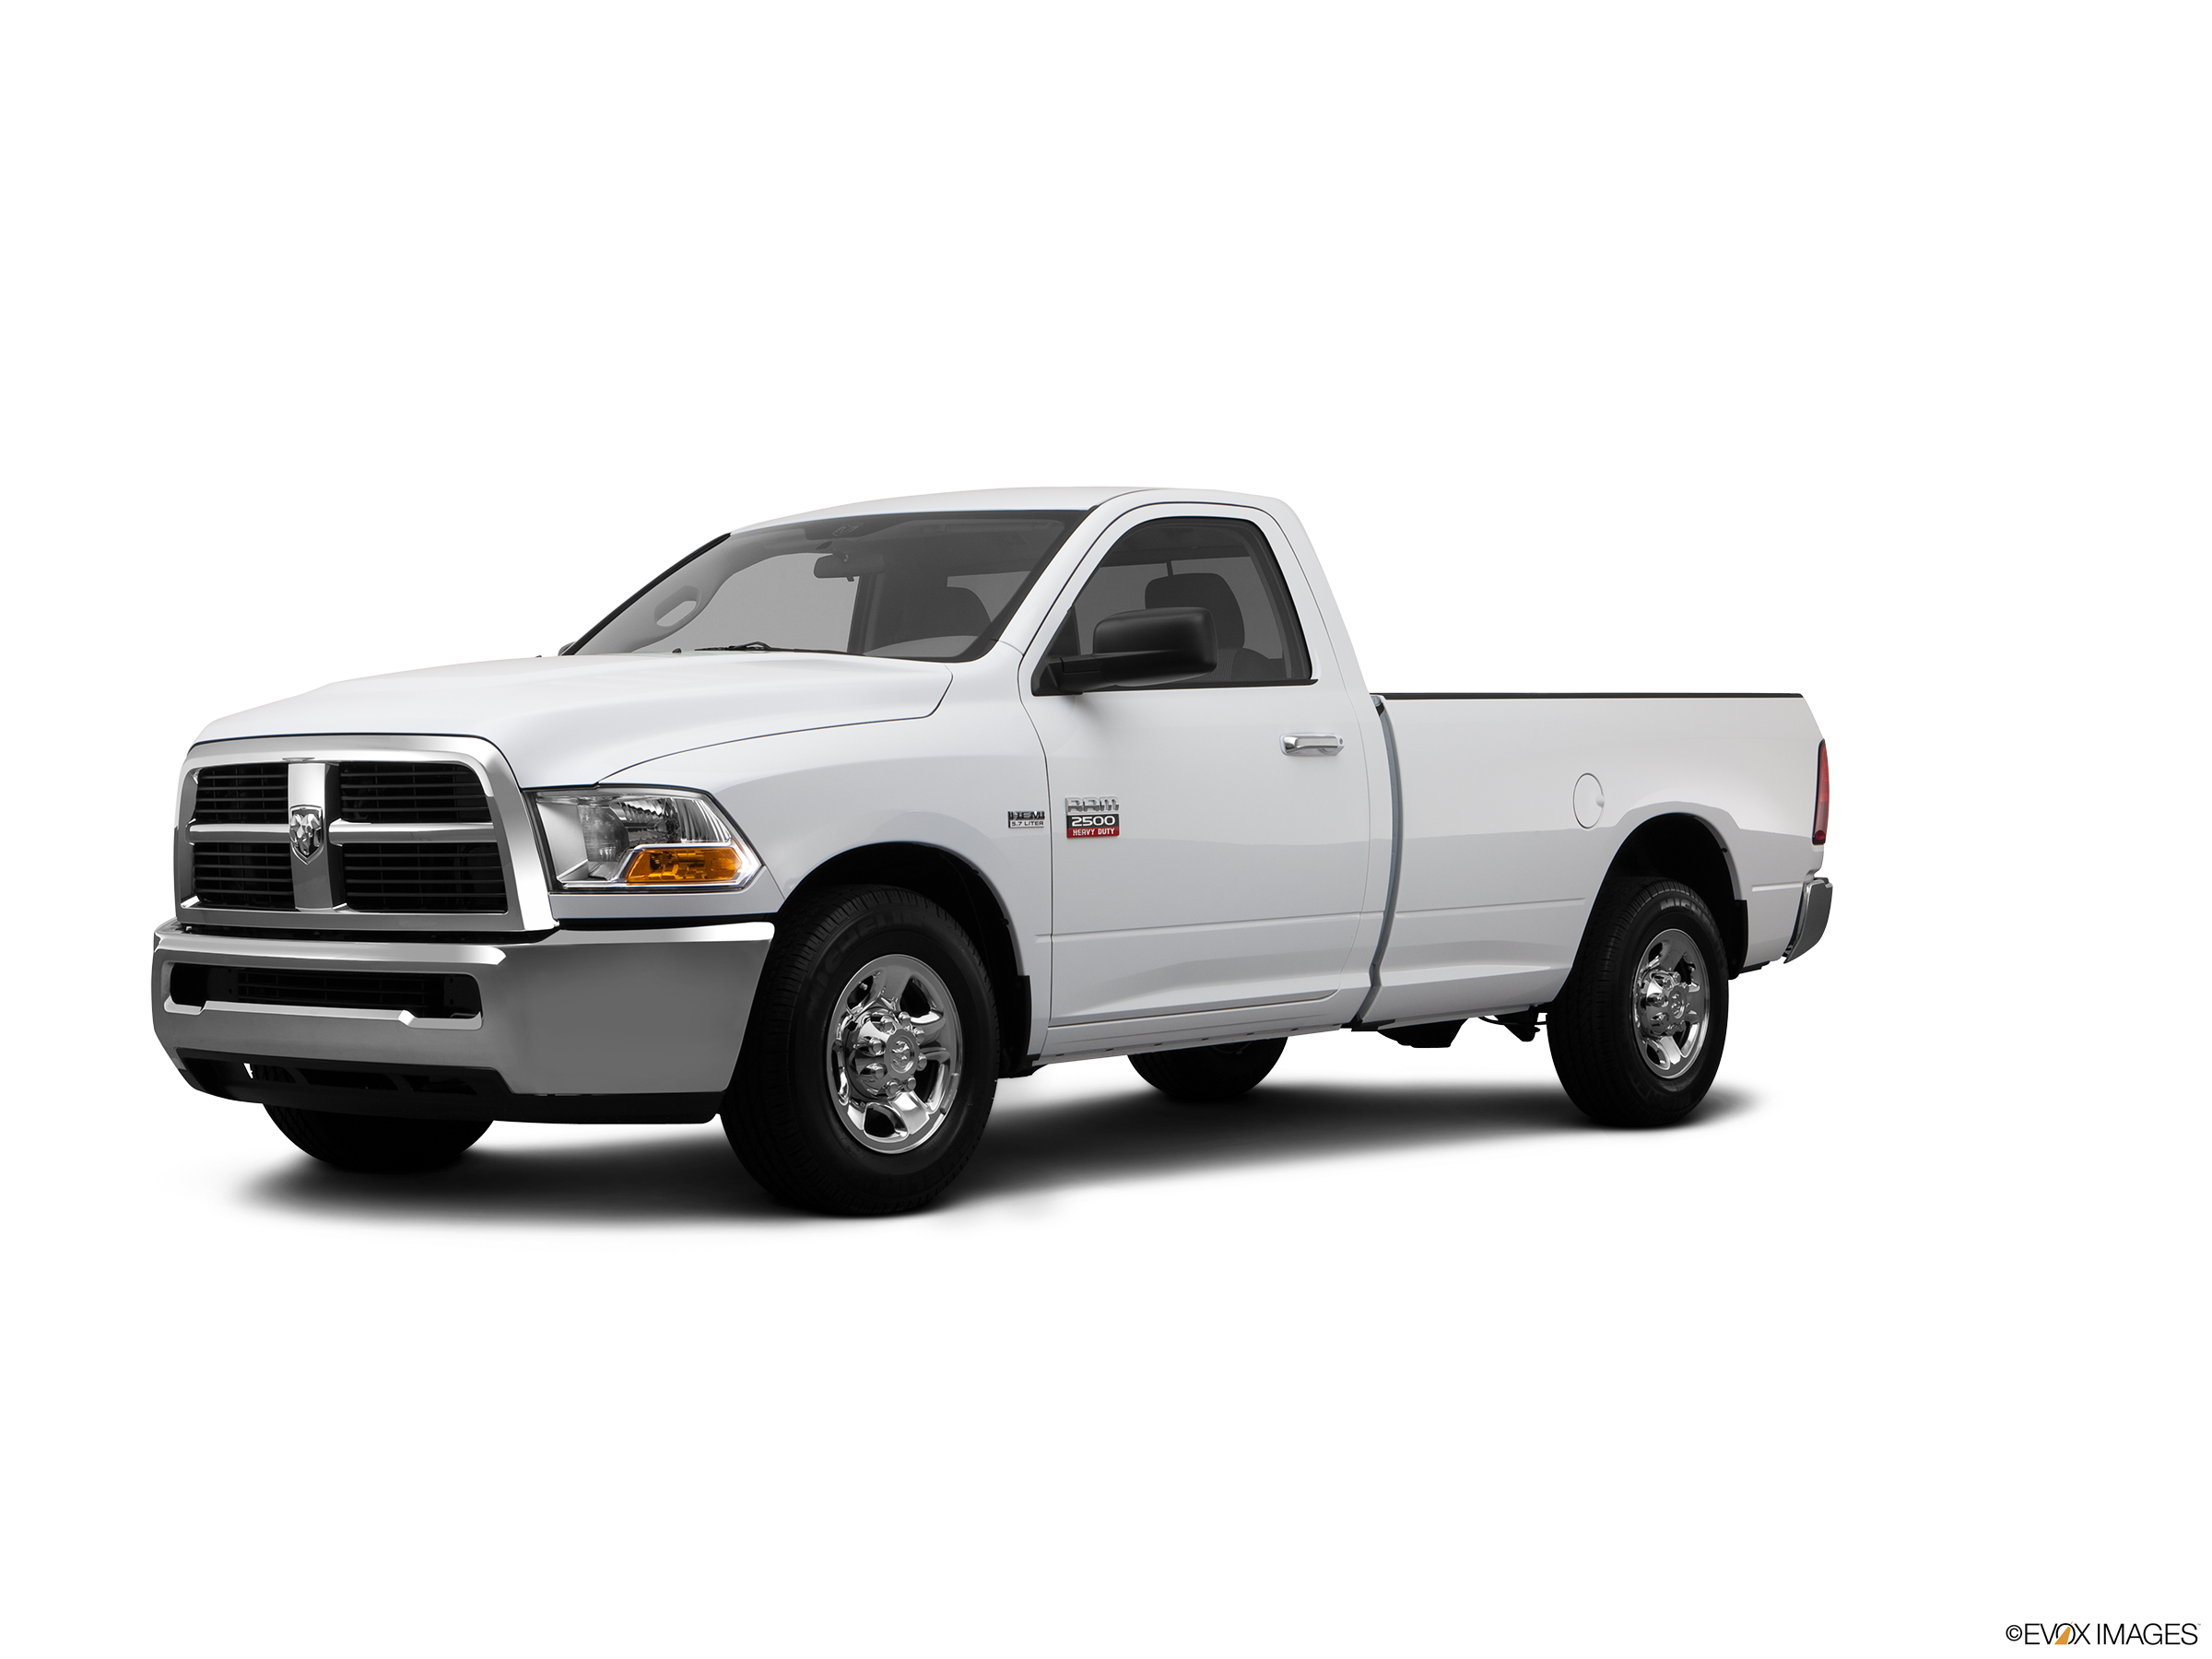 2012 Ram 2500 Trucks Values Cars For Sale Kelley Blue Book